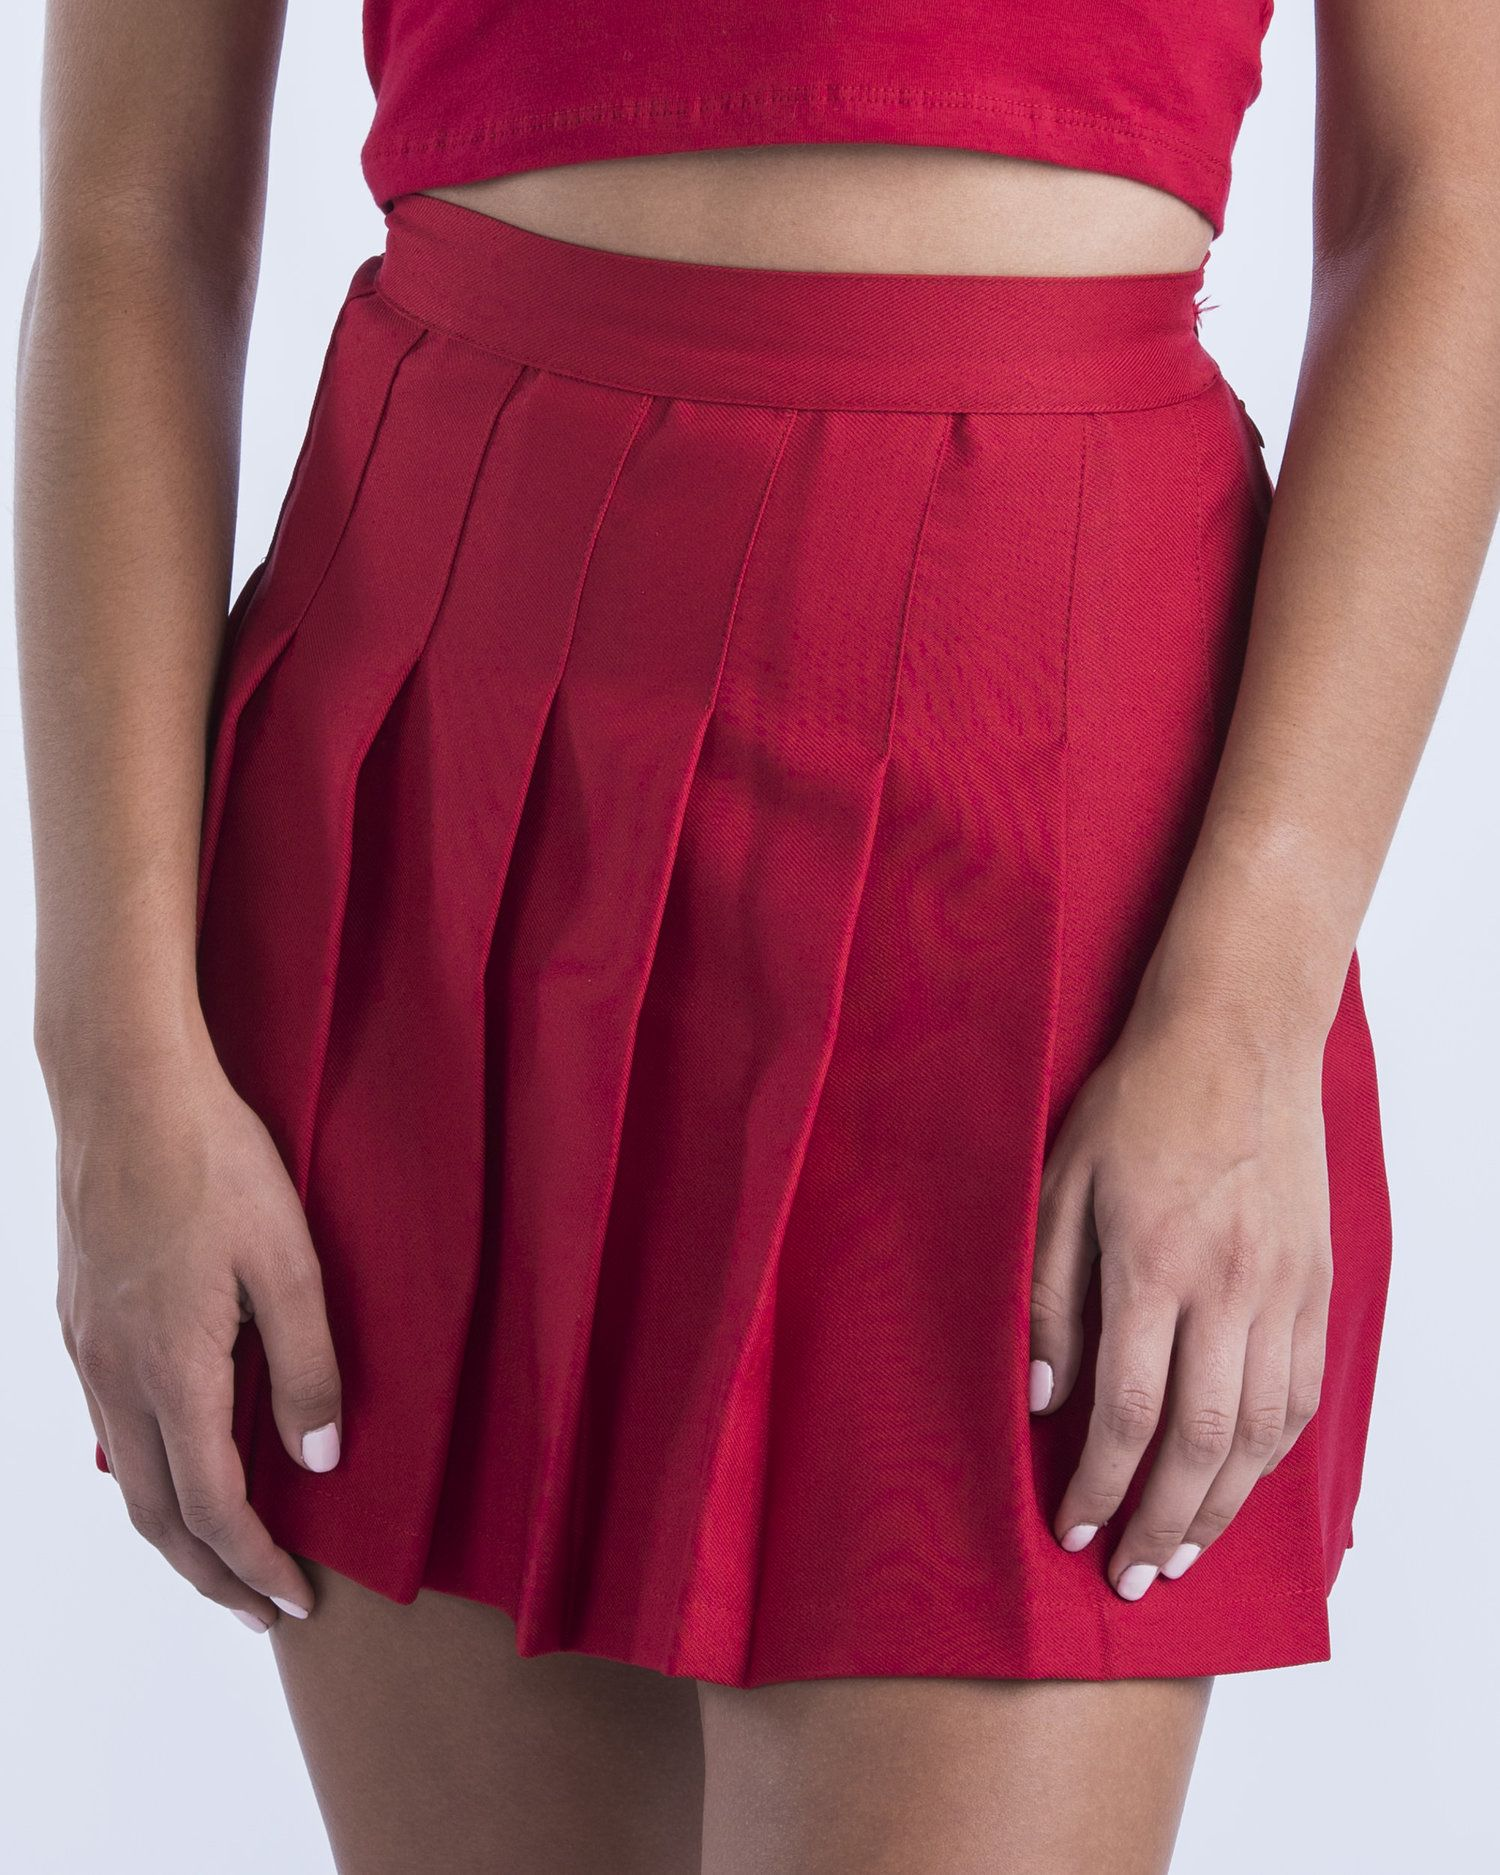 373a70eae2 Red Cheer Pleated Skirt Hype and Vice cute college tailgate game day  outfits apparel